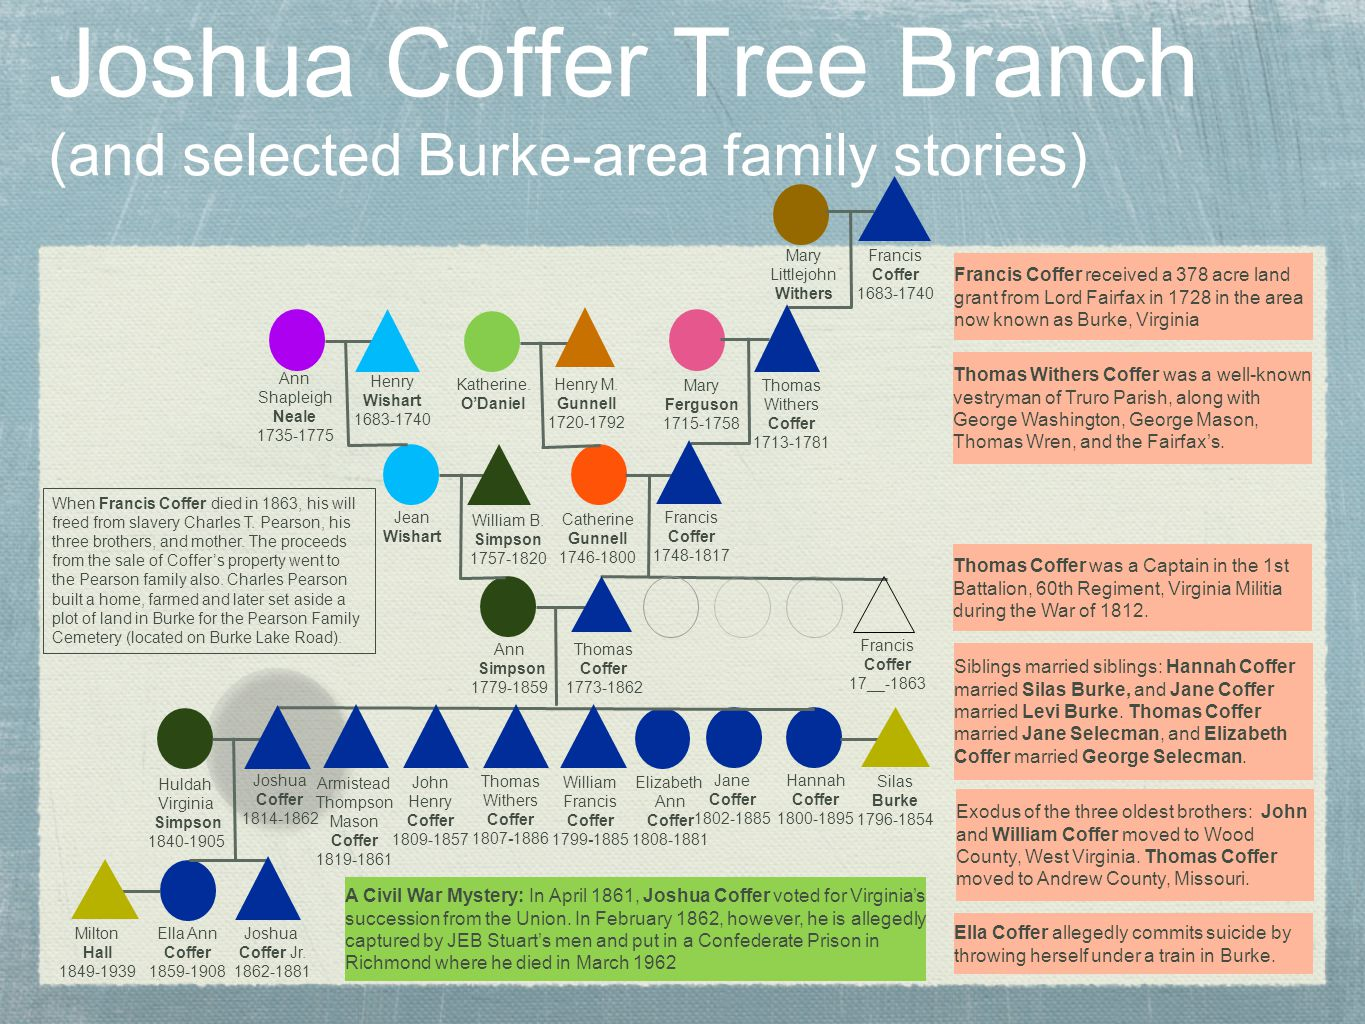 Joshua Coffer Tree Branch (and selected Burke-area family stories)